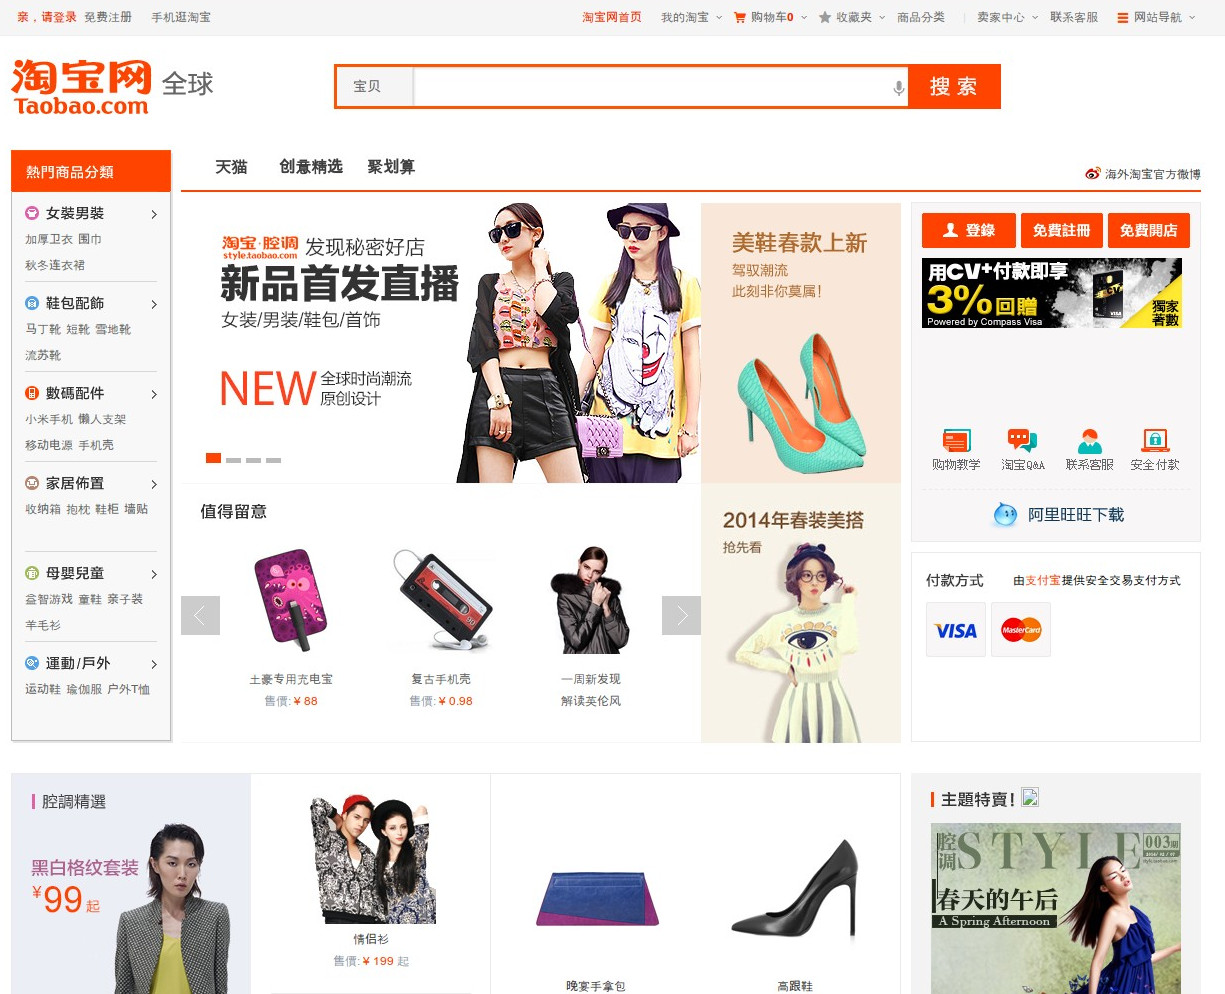 Korean Online Shopping Malls in China Experience Trademark ...